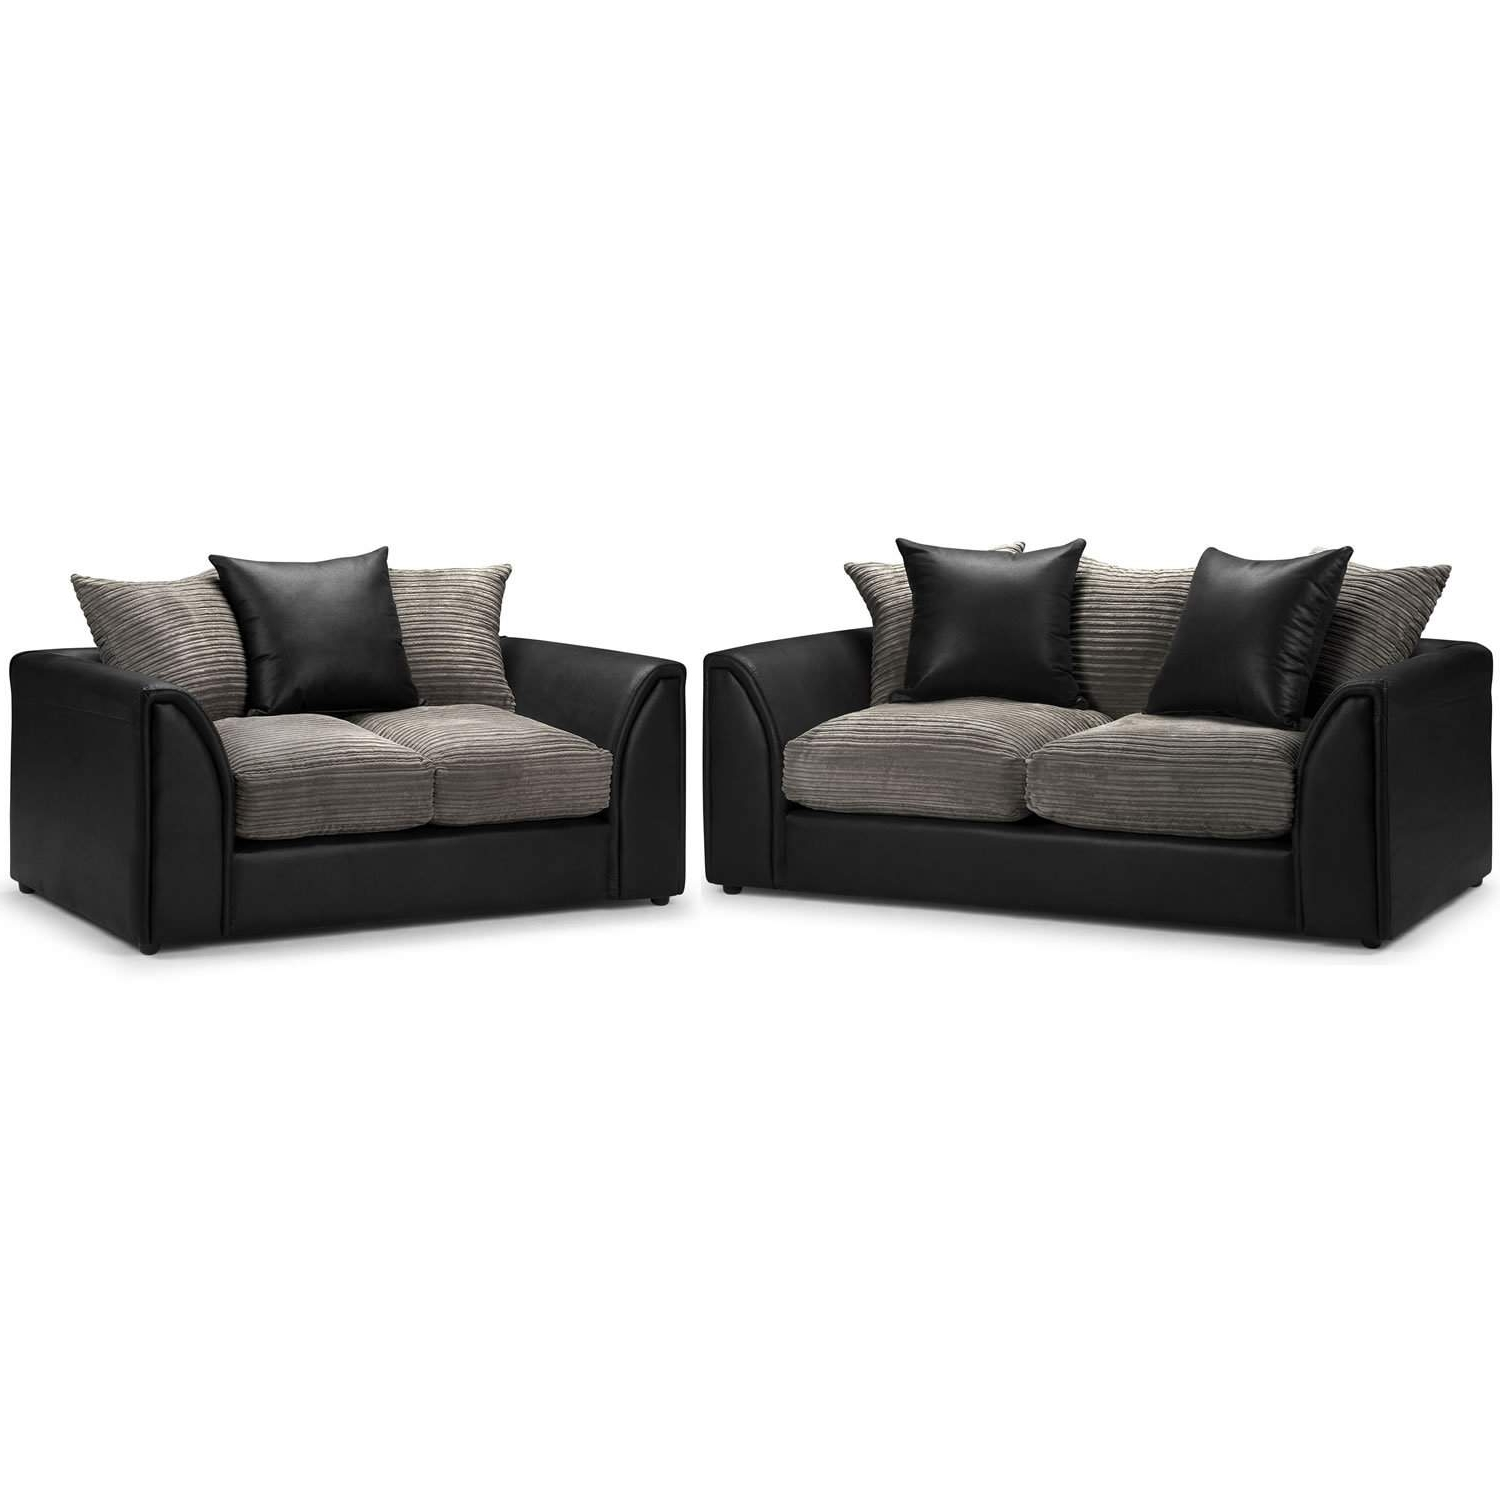 Black 2 Seater Sofas With Regard To Current Byron 3 And 2 Seater Sofa Suite – Next Day Delivery Byron 3 And 2 (Gallery 9 of 20)